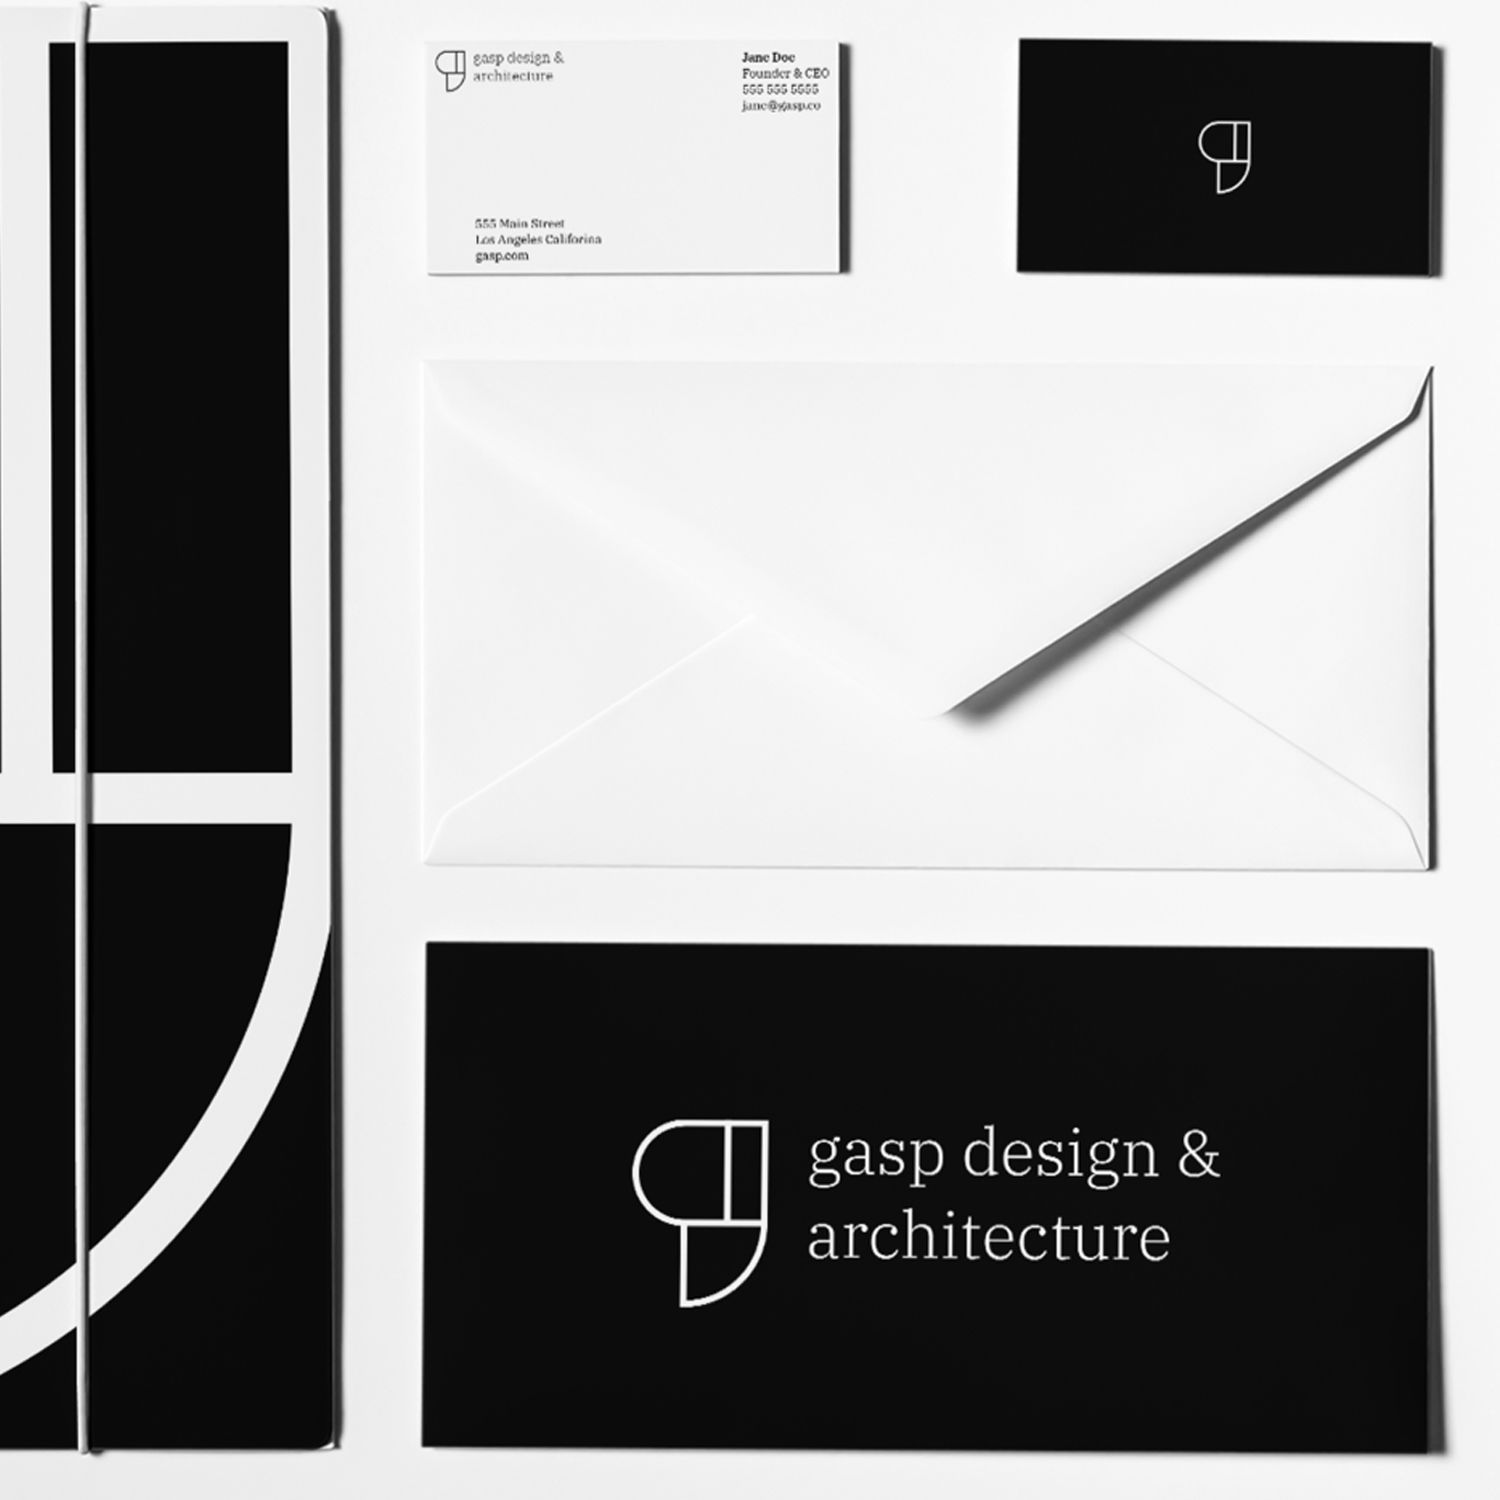 Gasp Design gasp architecture is lucky to zacharyrhill design their